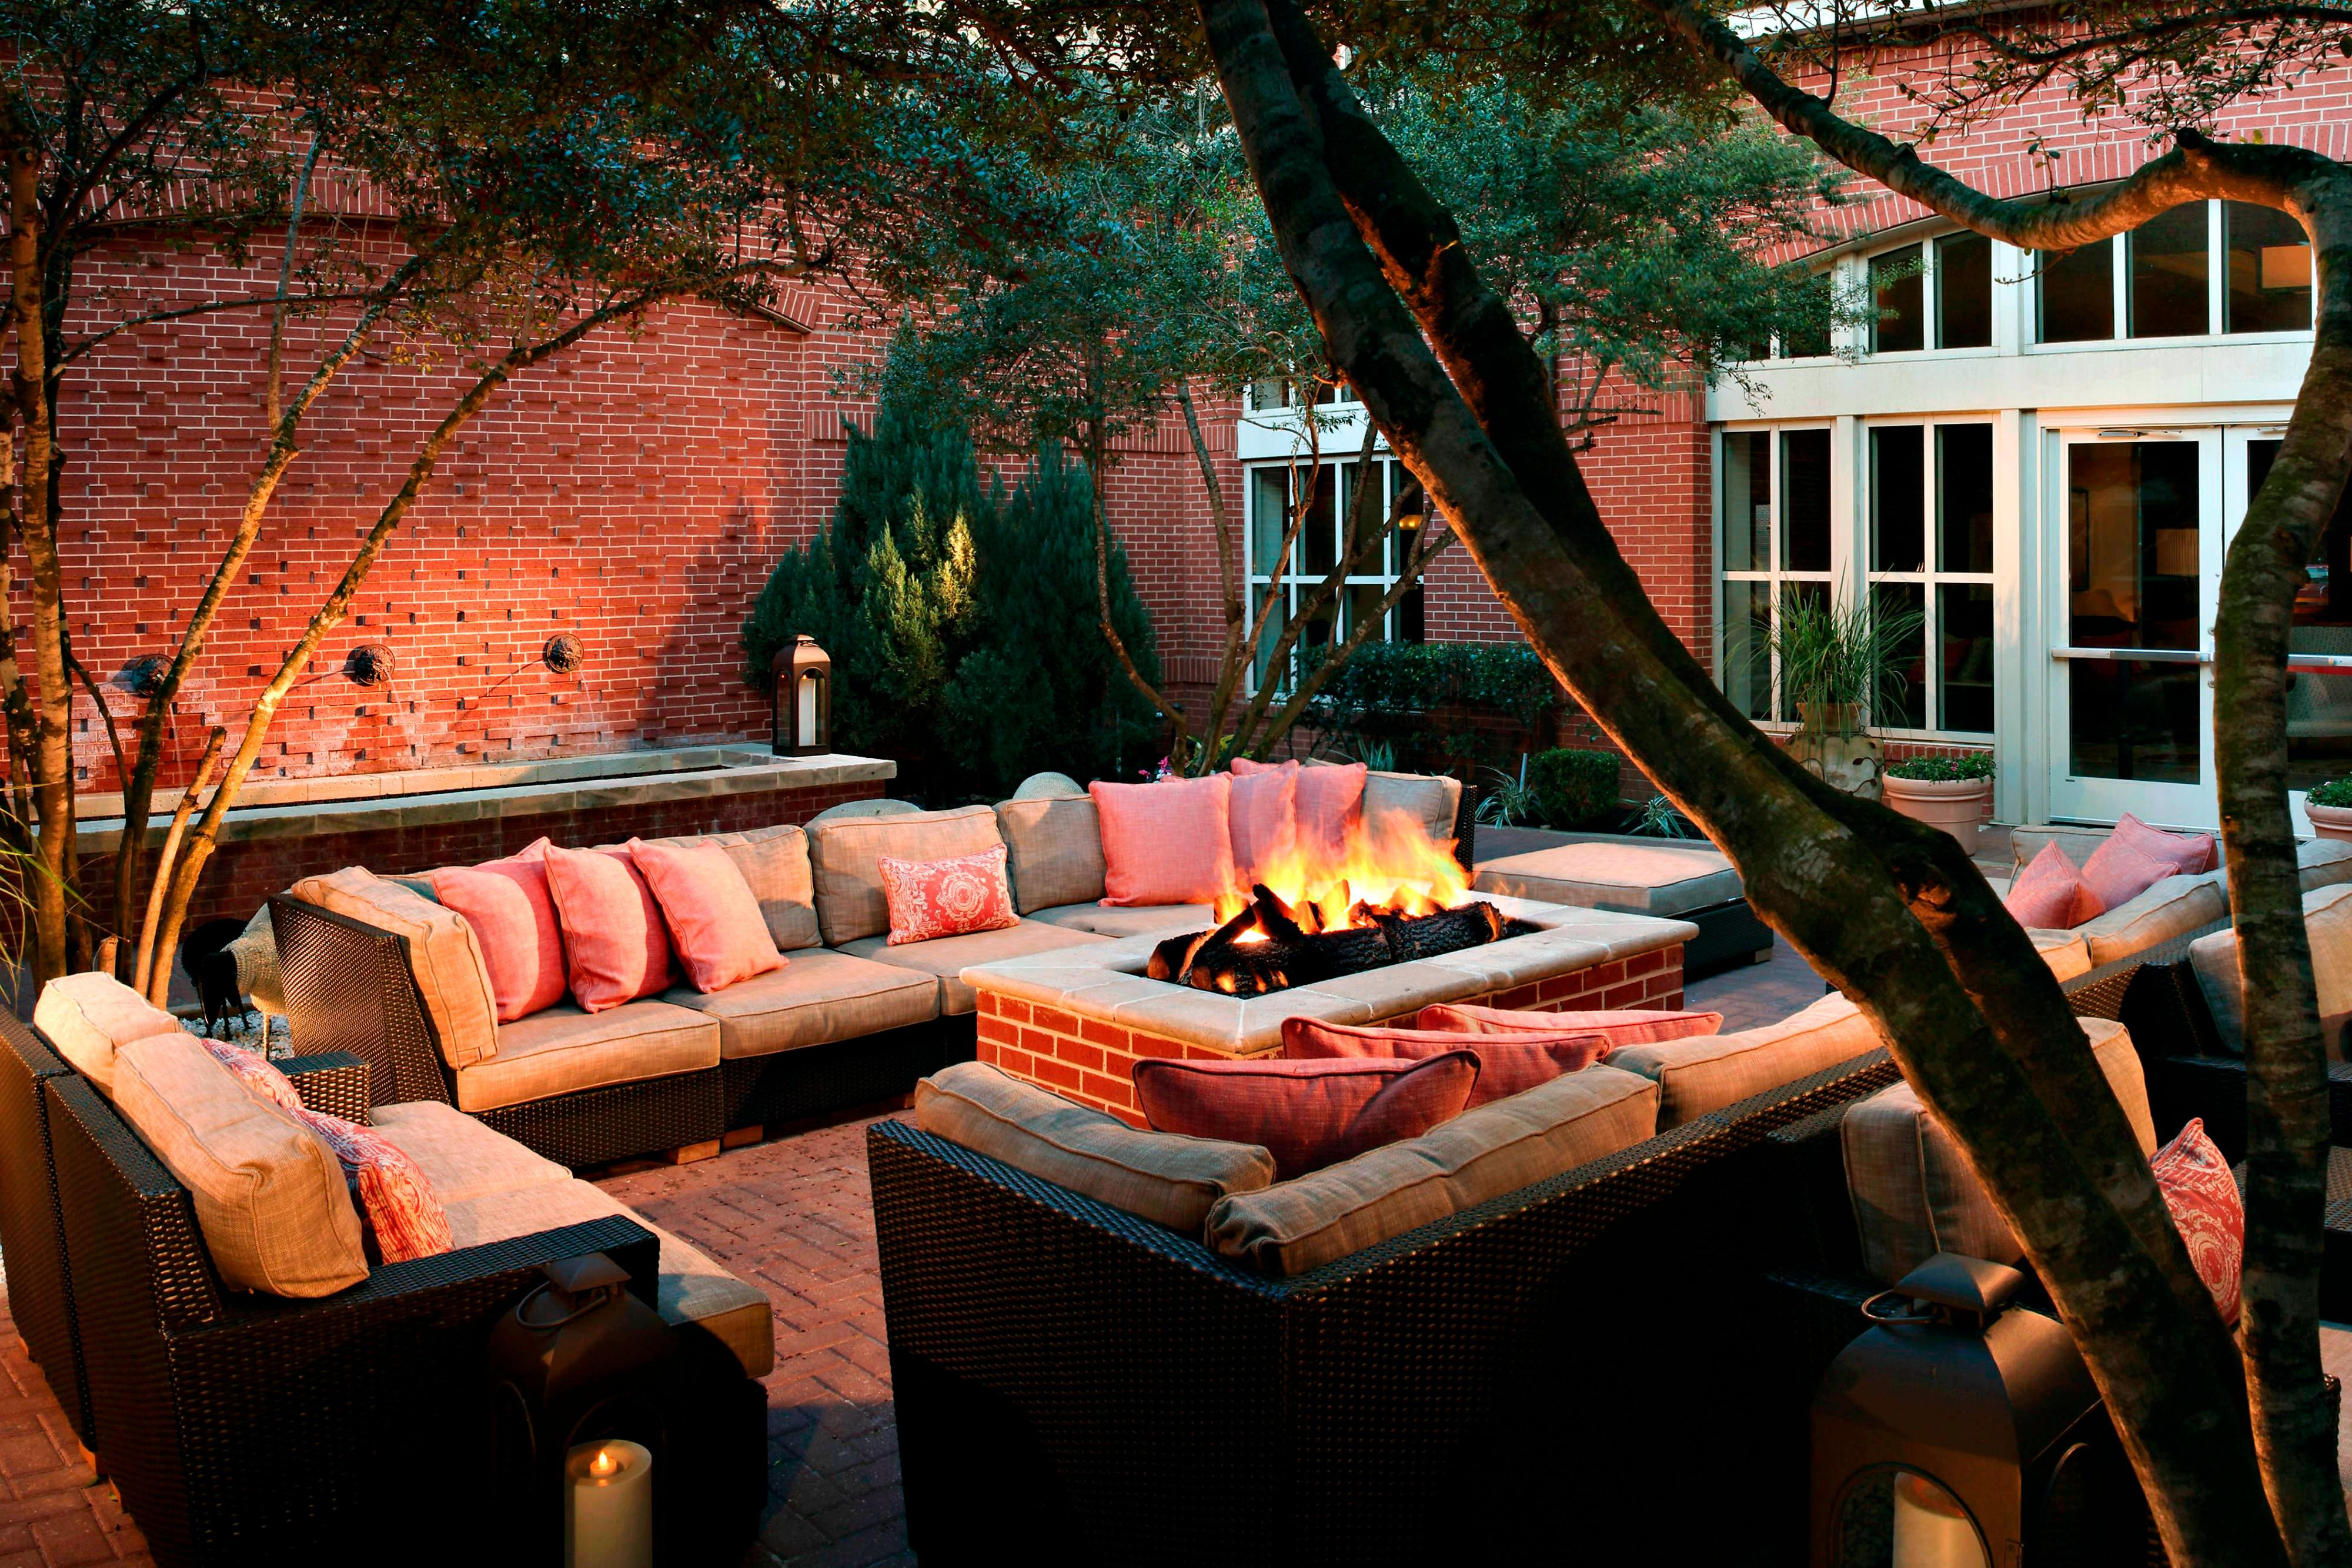 Sugar Land Marriott Fire Pit